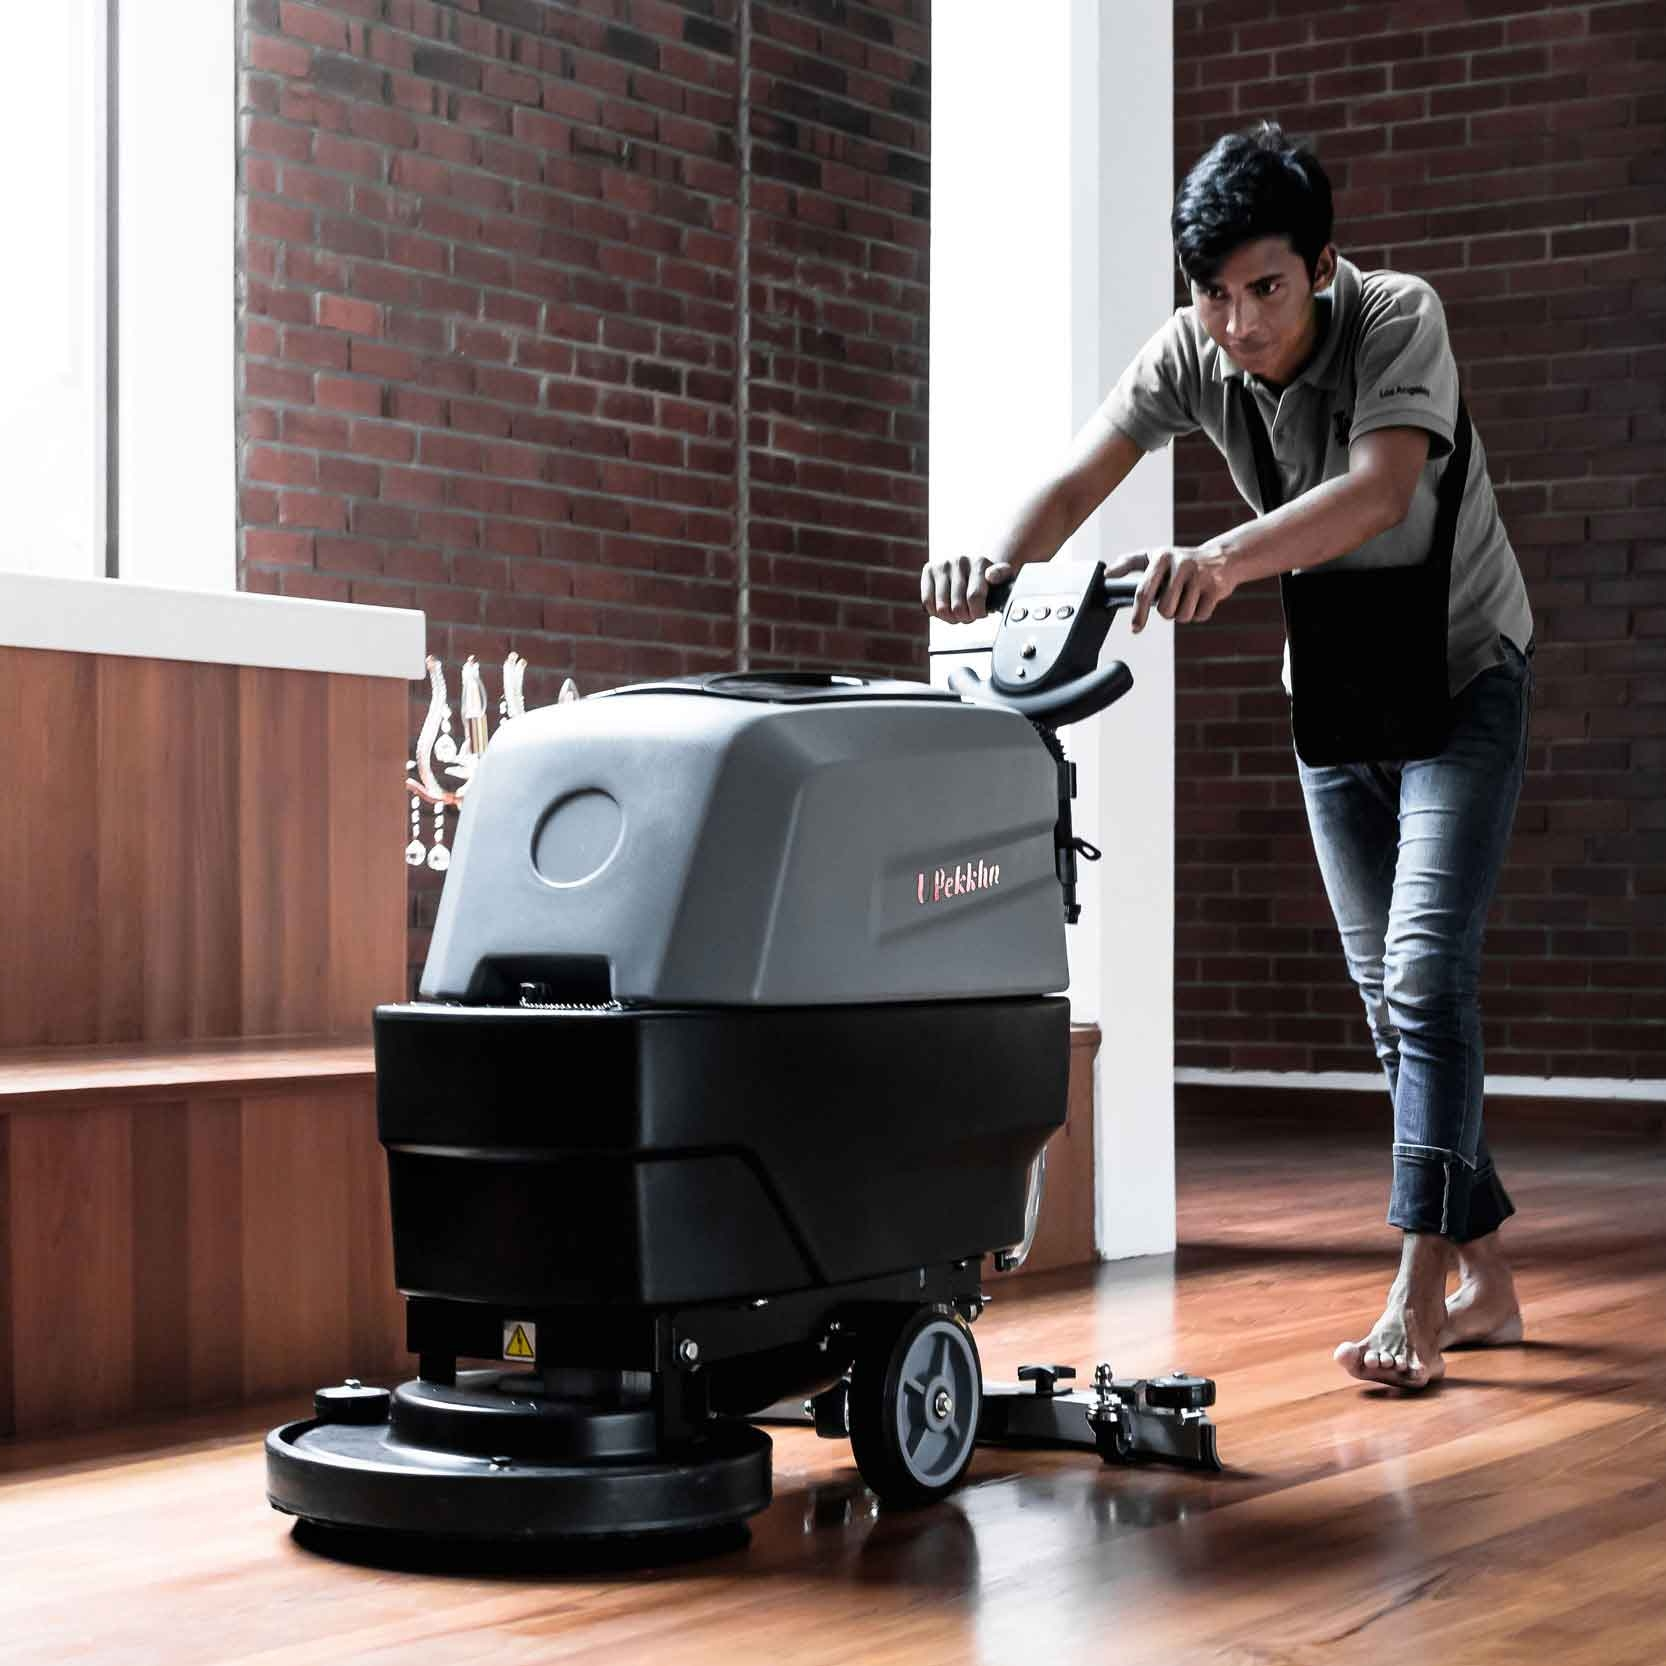 Upekkha™ Cleaning Equipment Automatic Scrubber Dryer Supplier Penang Malaysia